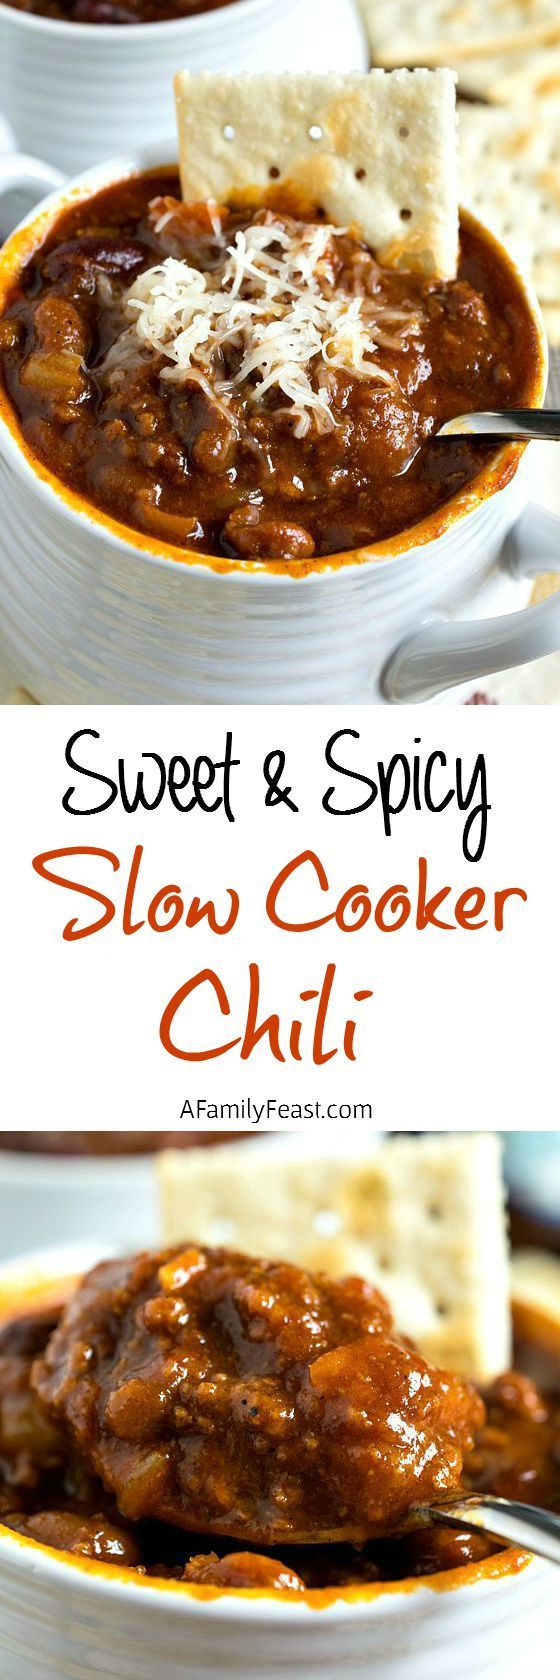 Glenn's Sweet & Spicy Slow Cooker Chili - A uniquely delicious chili that starts out sweet, then delivers a spicy kick! Addictively delicious!